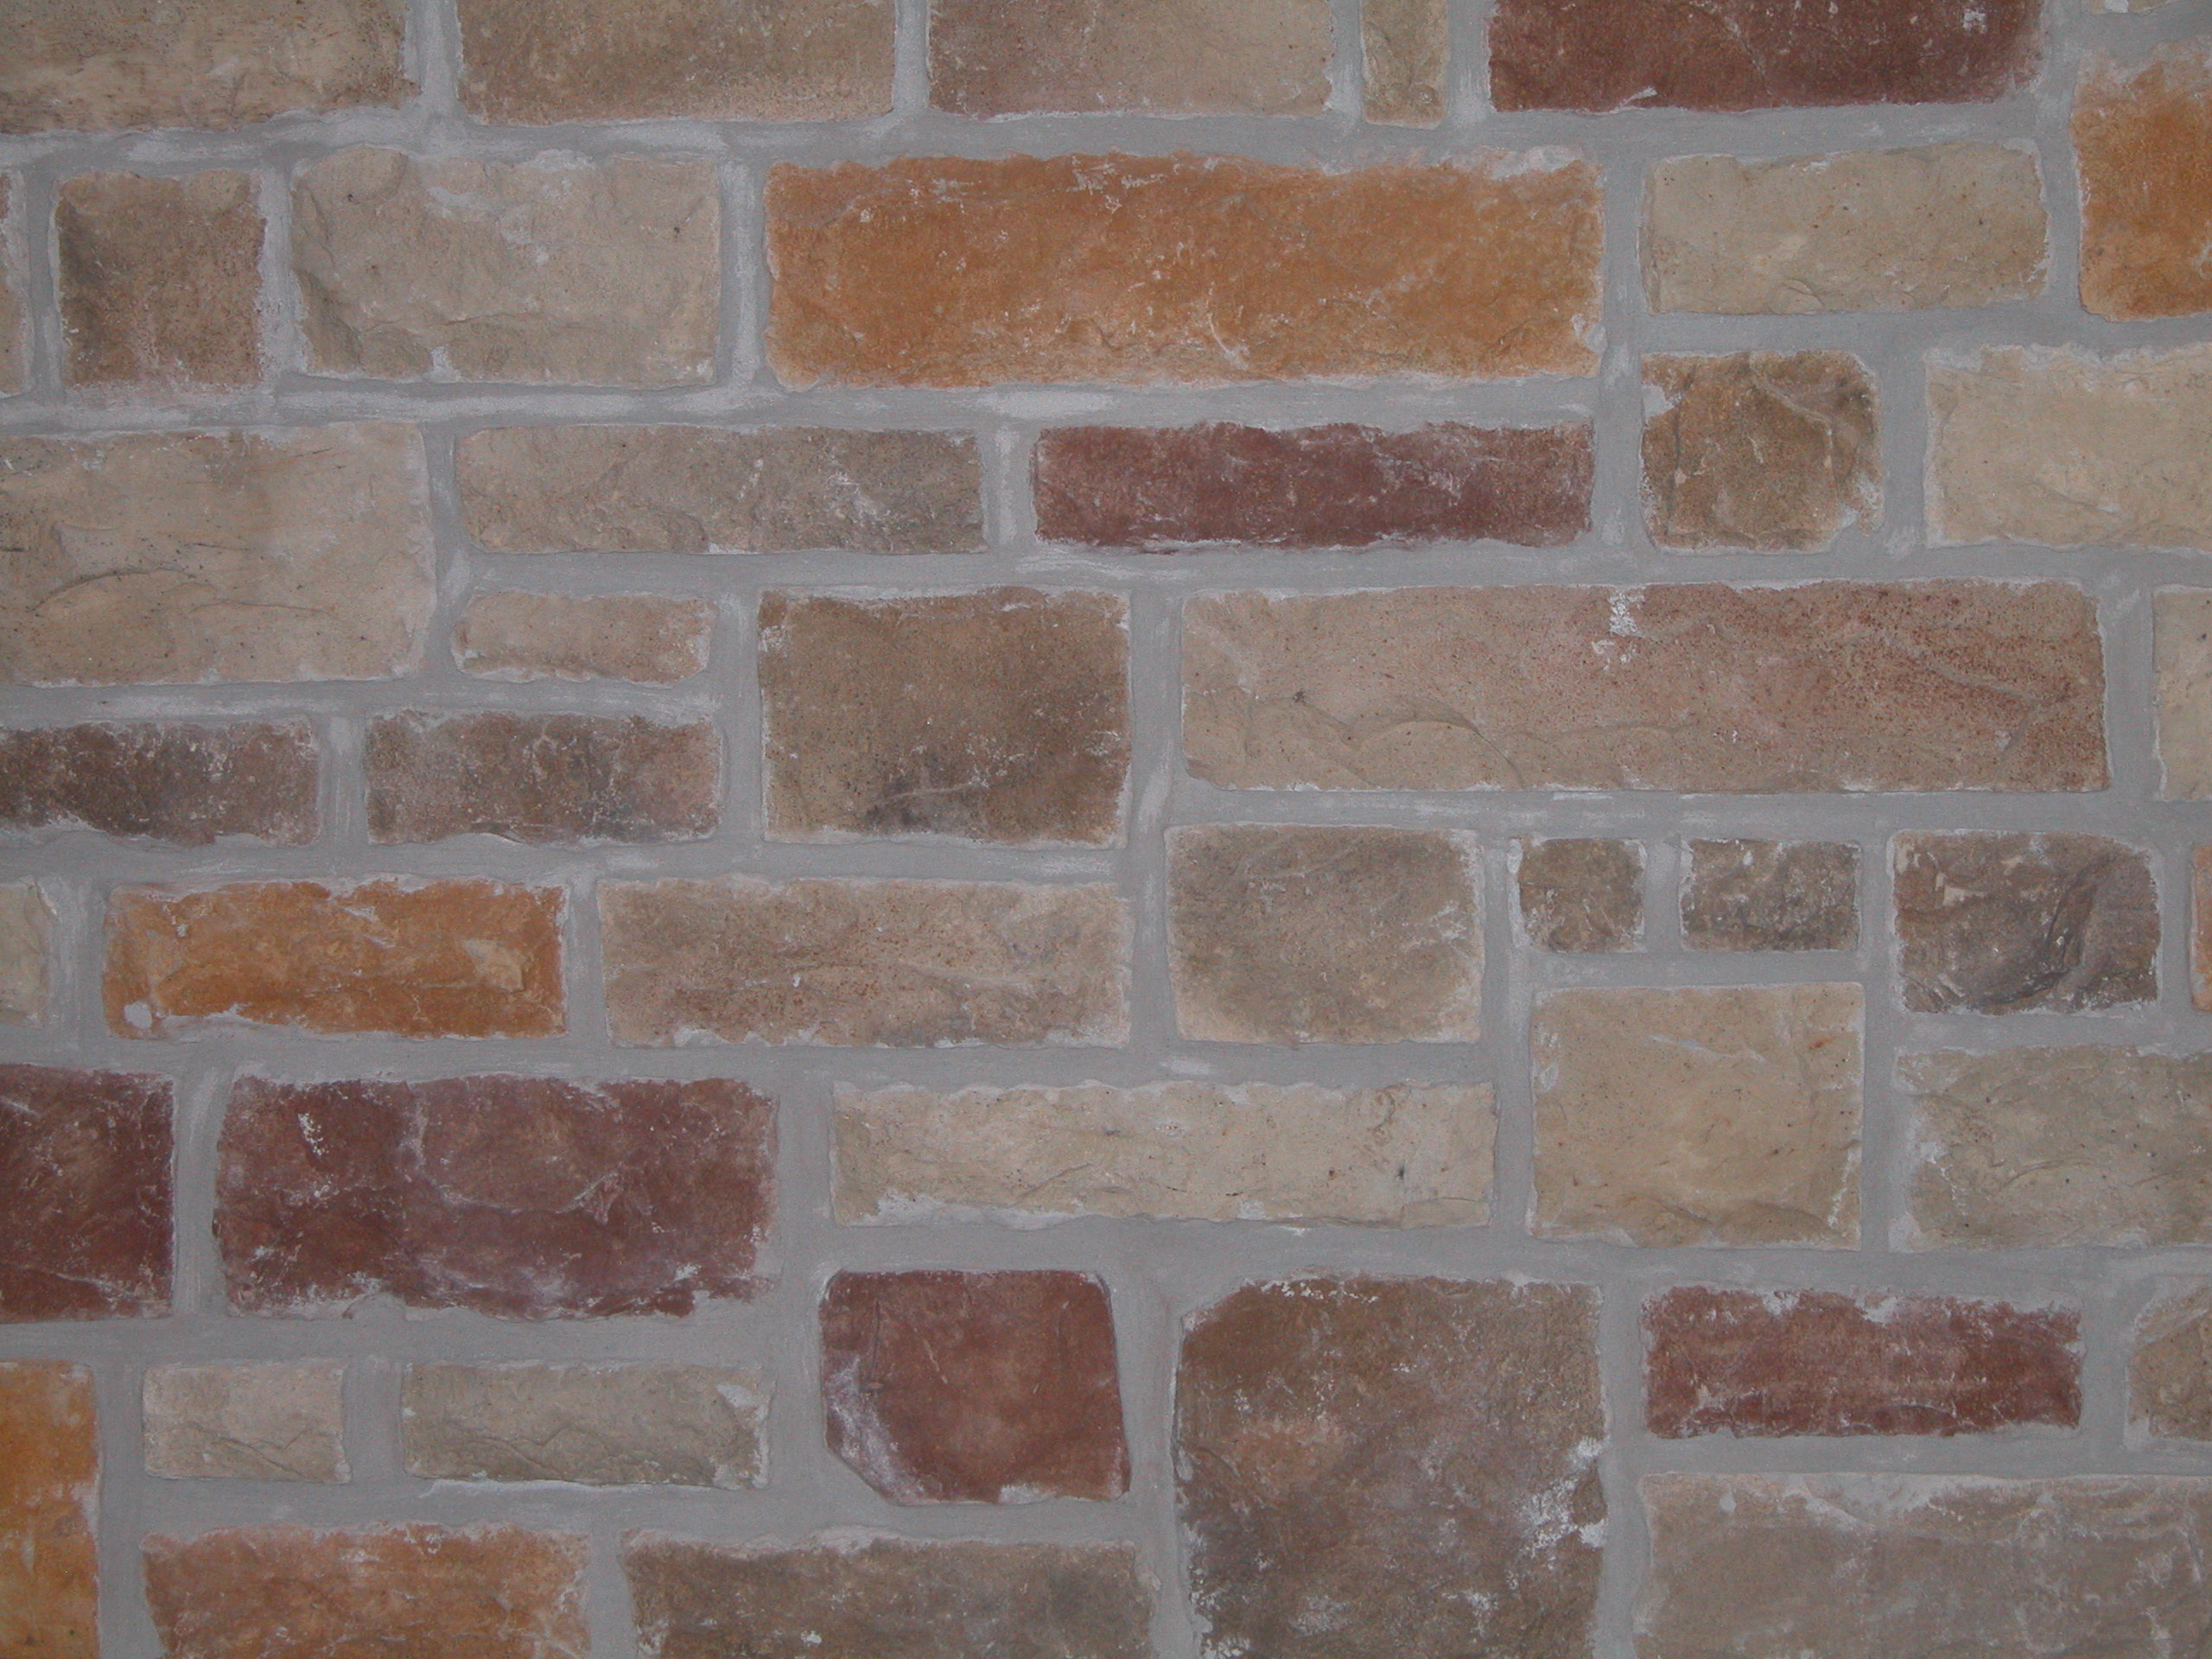 Stone Veneer   Exterior Building ProductsStone Veneer   Exterior Building Products. Exterior Stone Floor Products. Home Design Ideas